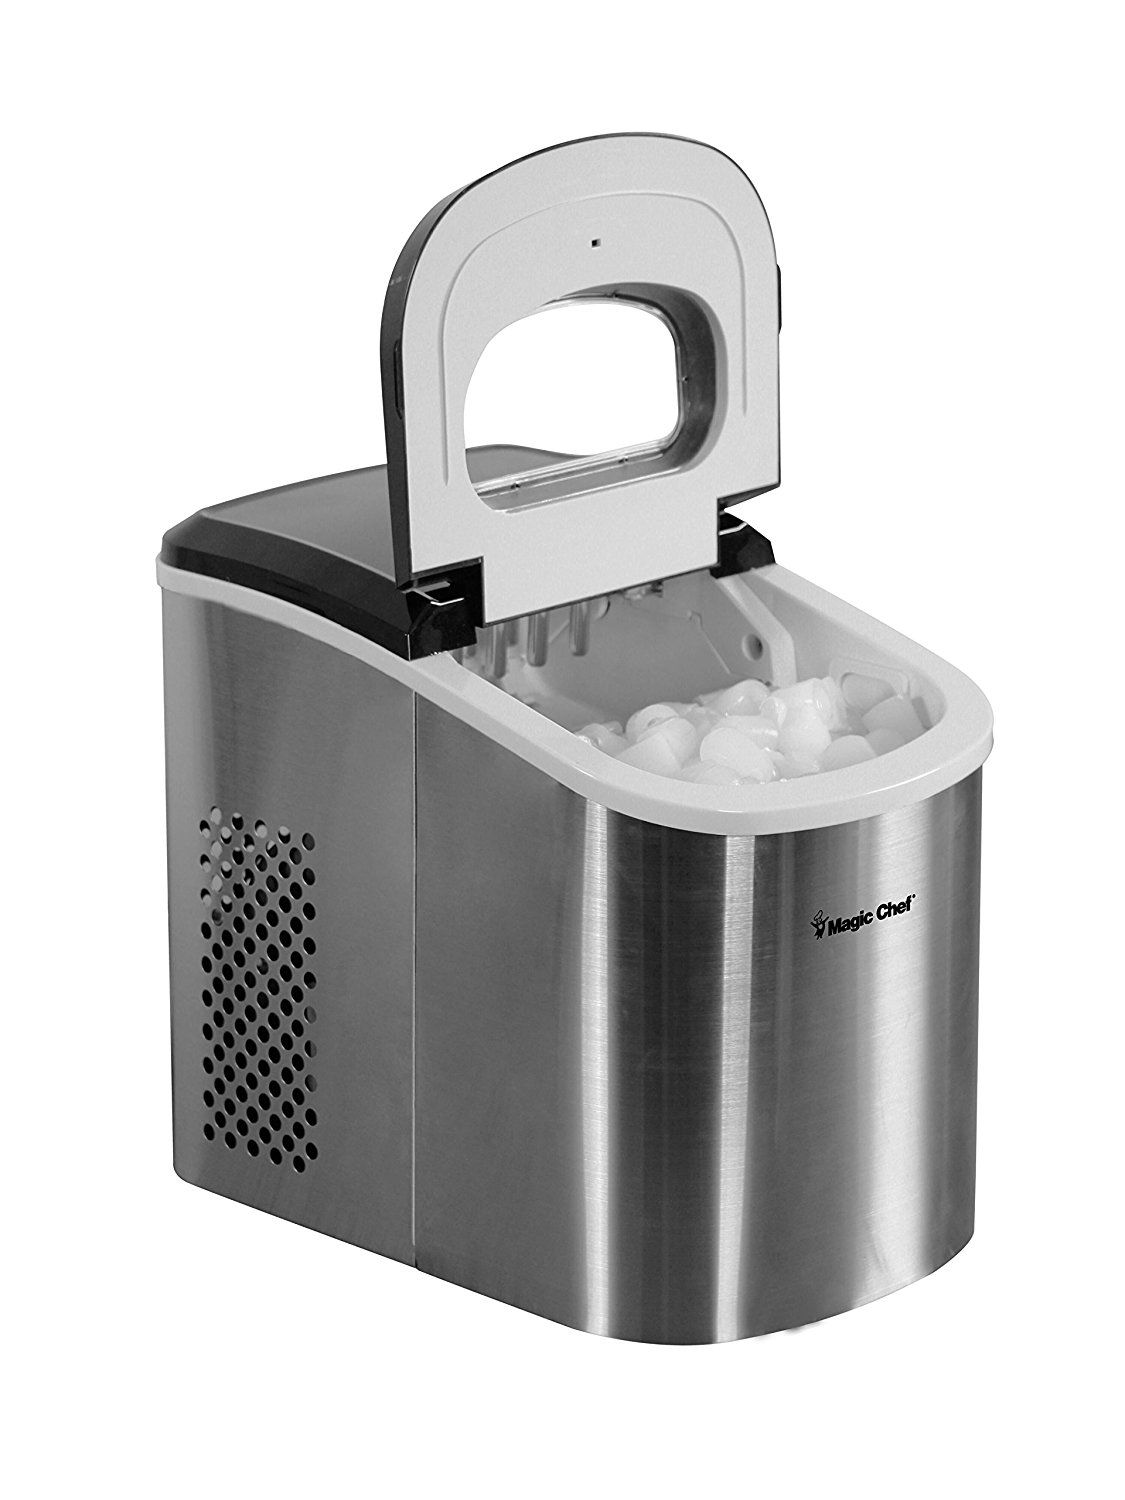 Best Countertop Portable Ice Maker September 2020 Winners And Losers List Reviews Deals More Portable Ice Maker Portable Ice Maker Camping Ice Maker